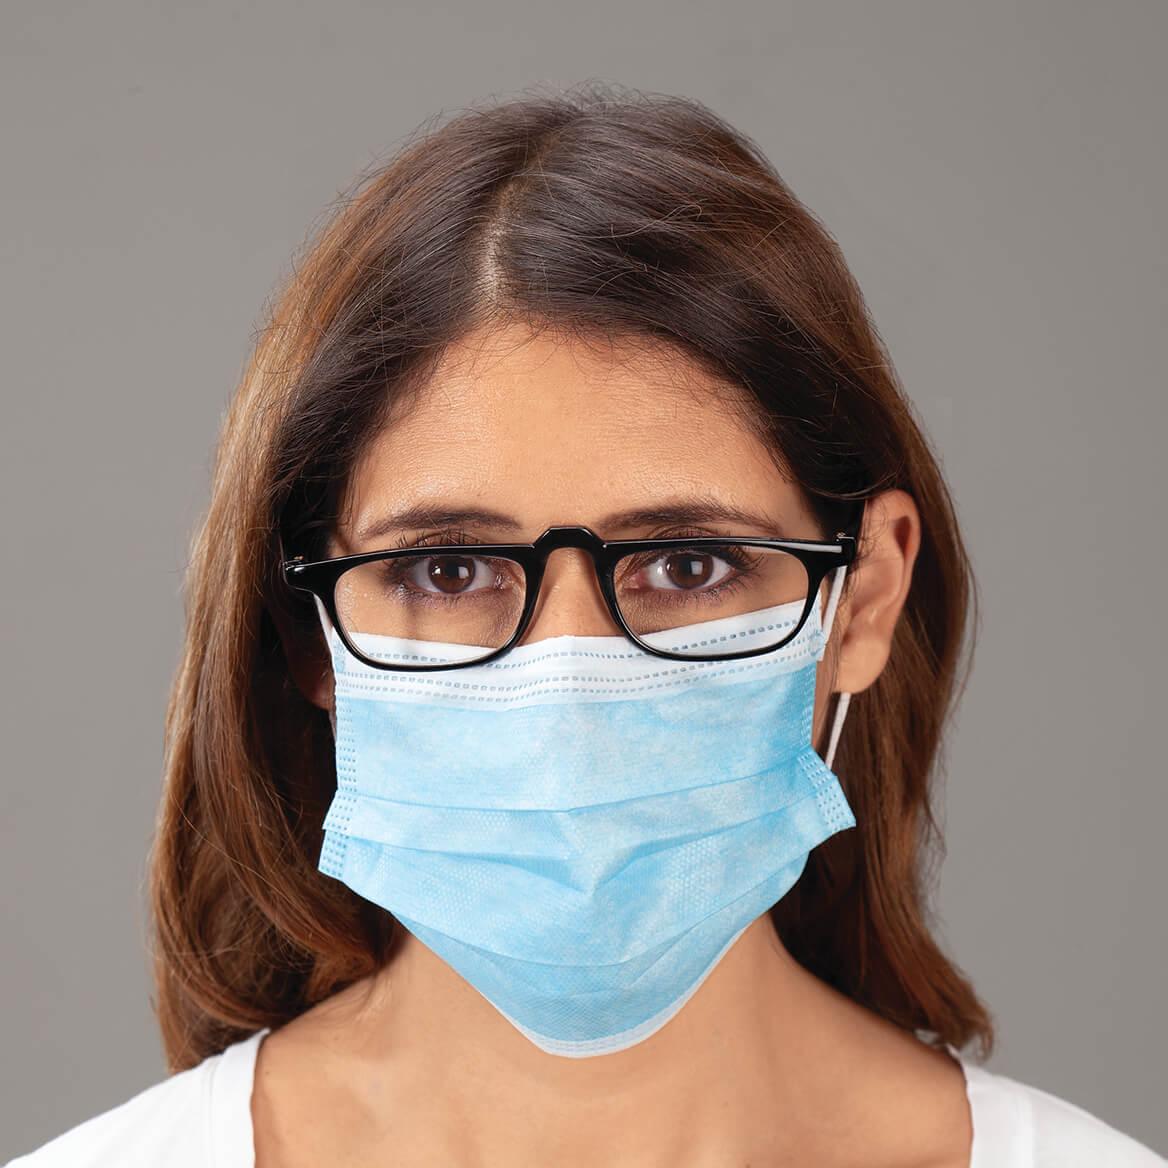 3-Ply Disposable Masks, Set of 50-371156